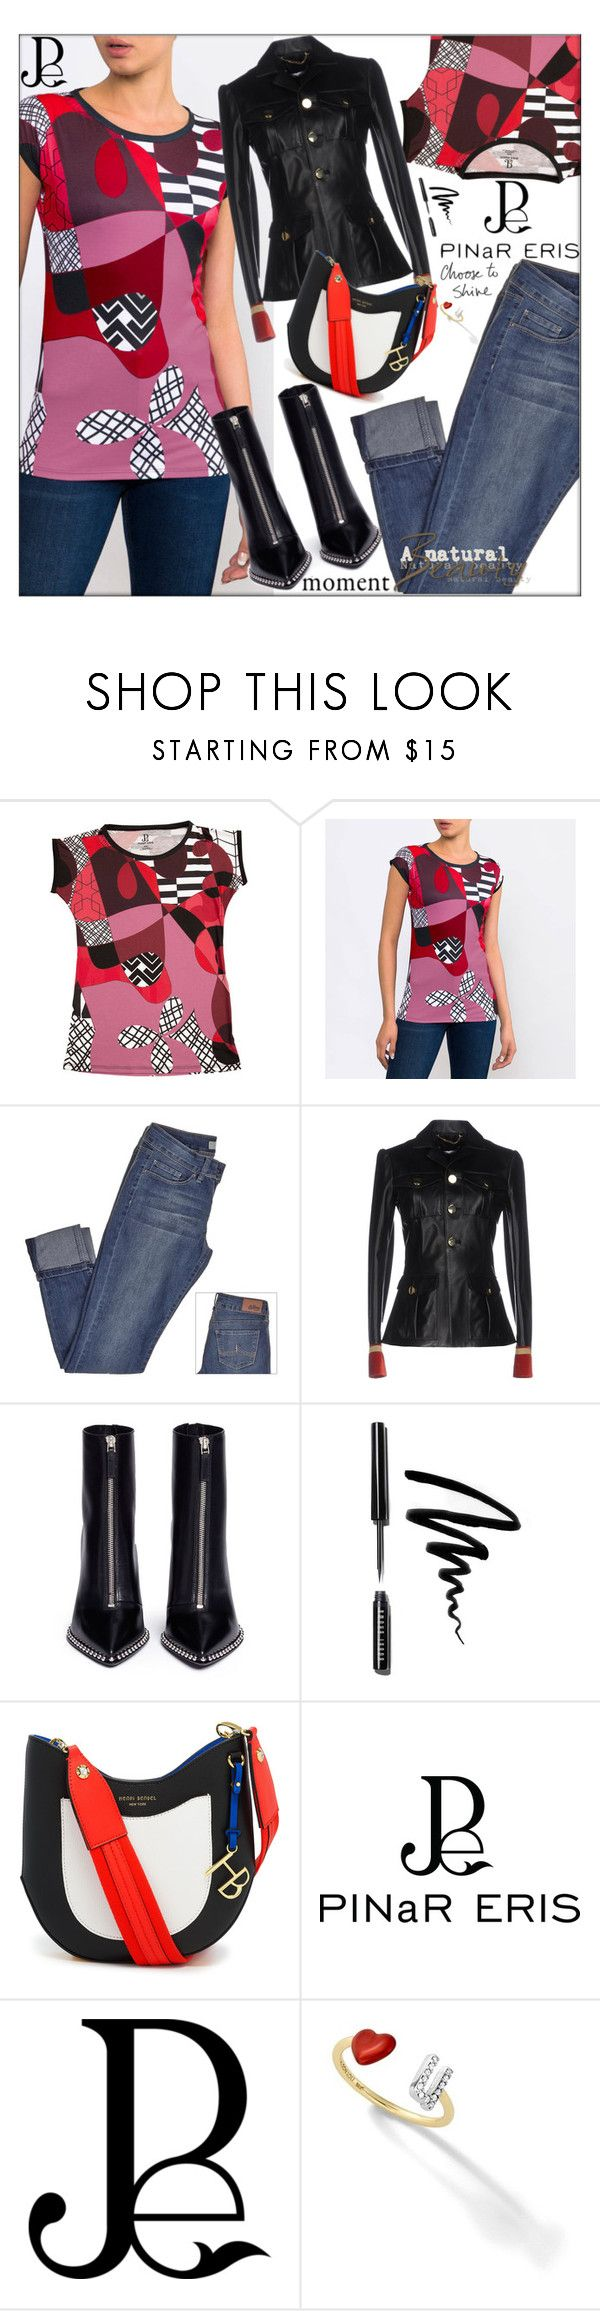 """""""#pinareris"""" by bilbomex ❤ liked on Polyvore featuring Givenchy, Alexander Wang, Bobbi Brown Cosmetics, Henri Bendel and Alison Lou"""